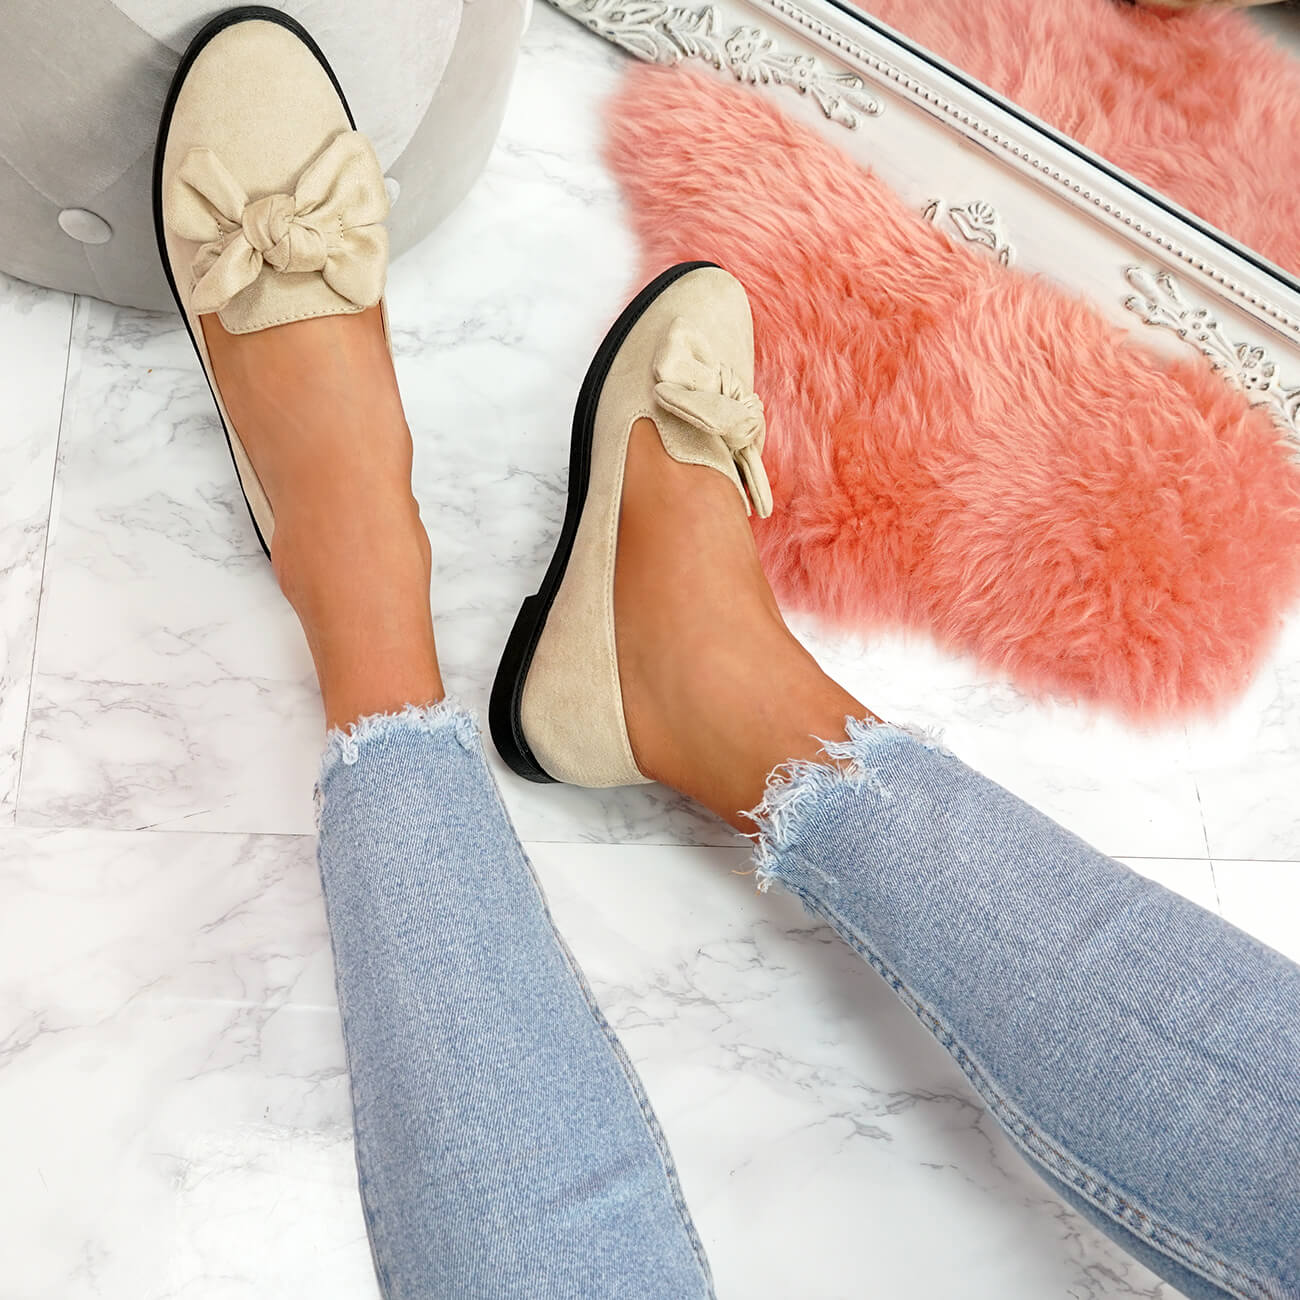 WOMENS-LADIES-BOW-BALLERINA-PUMPS-FLATS-SLIP-ON-BALLET-CASUAL-WORK-SHOES-SIZE thumbnail 8